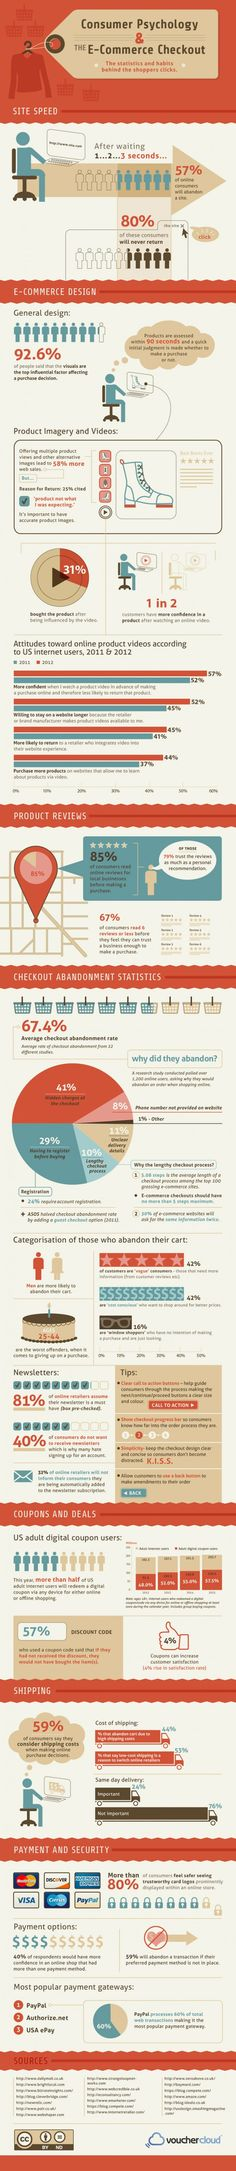 #Consumer Psychology and the #ECommerce Checkout. #Retail #Marketing